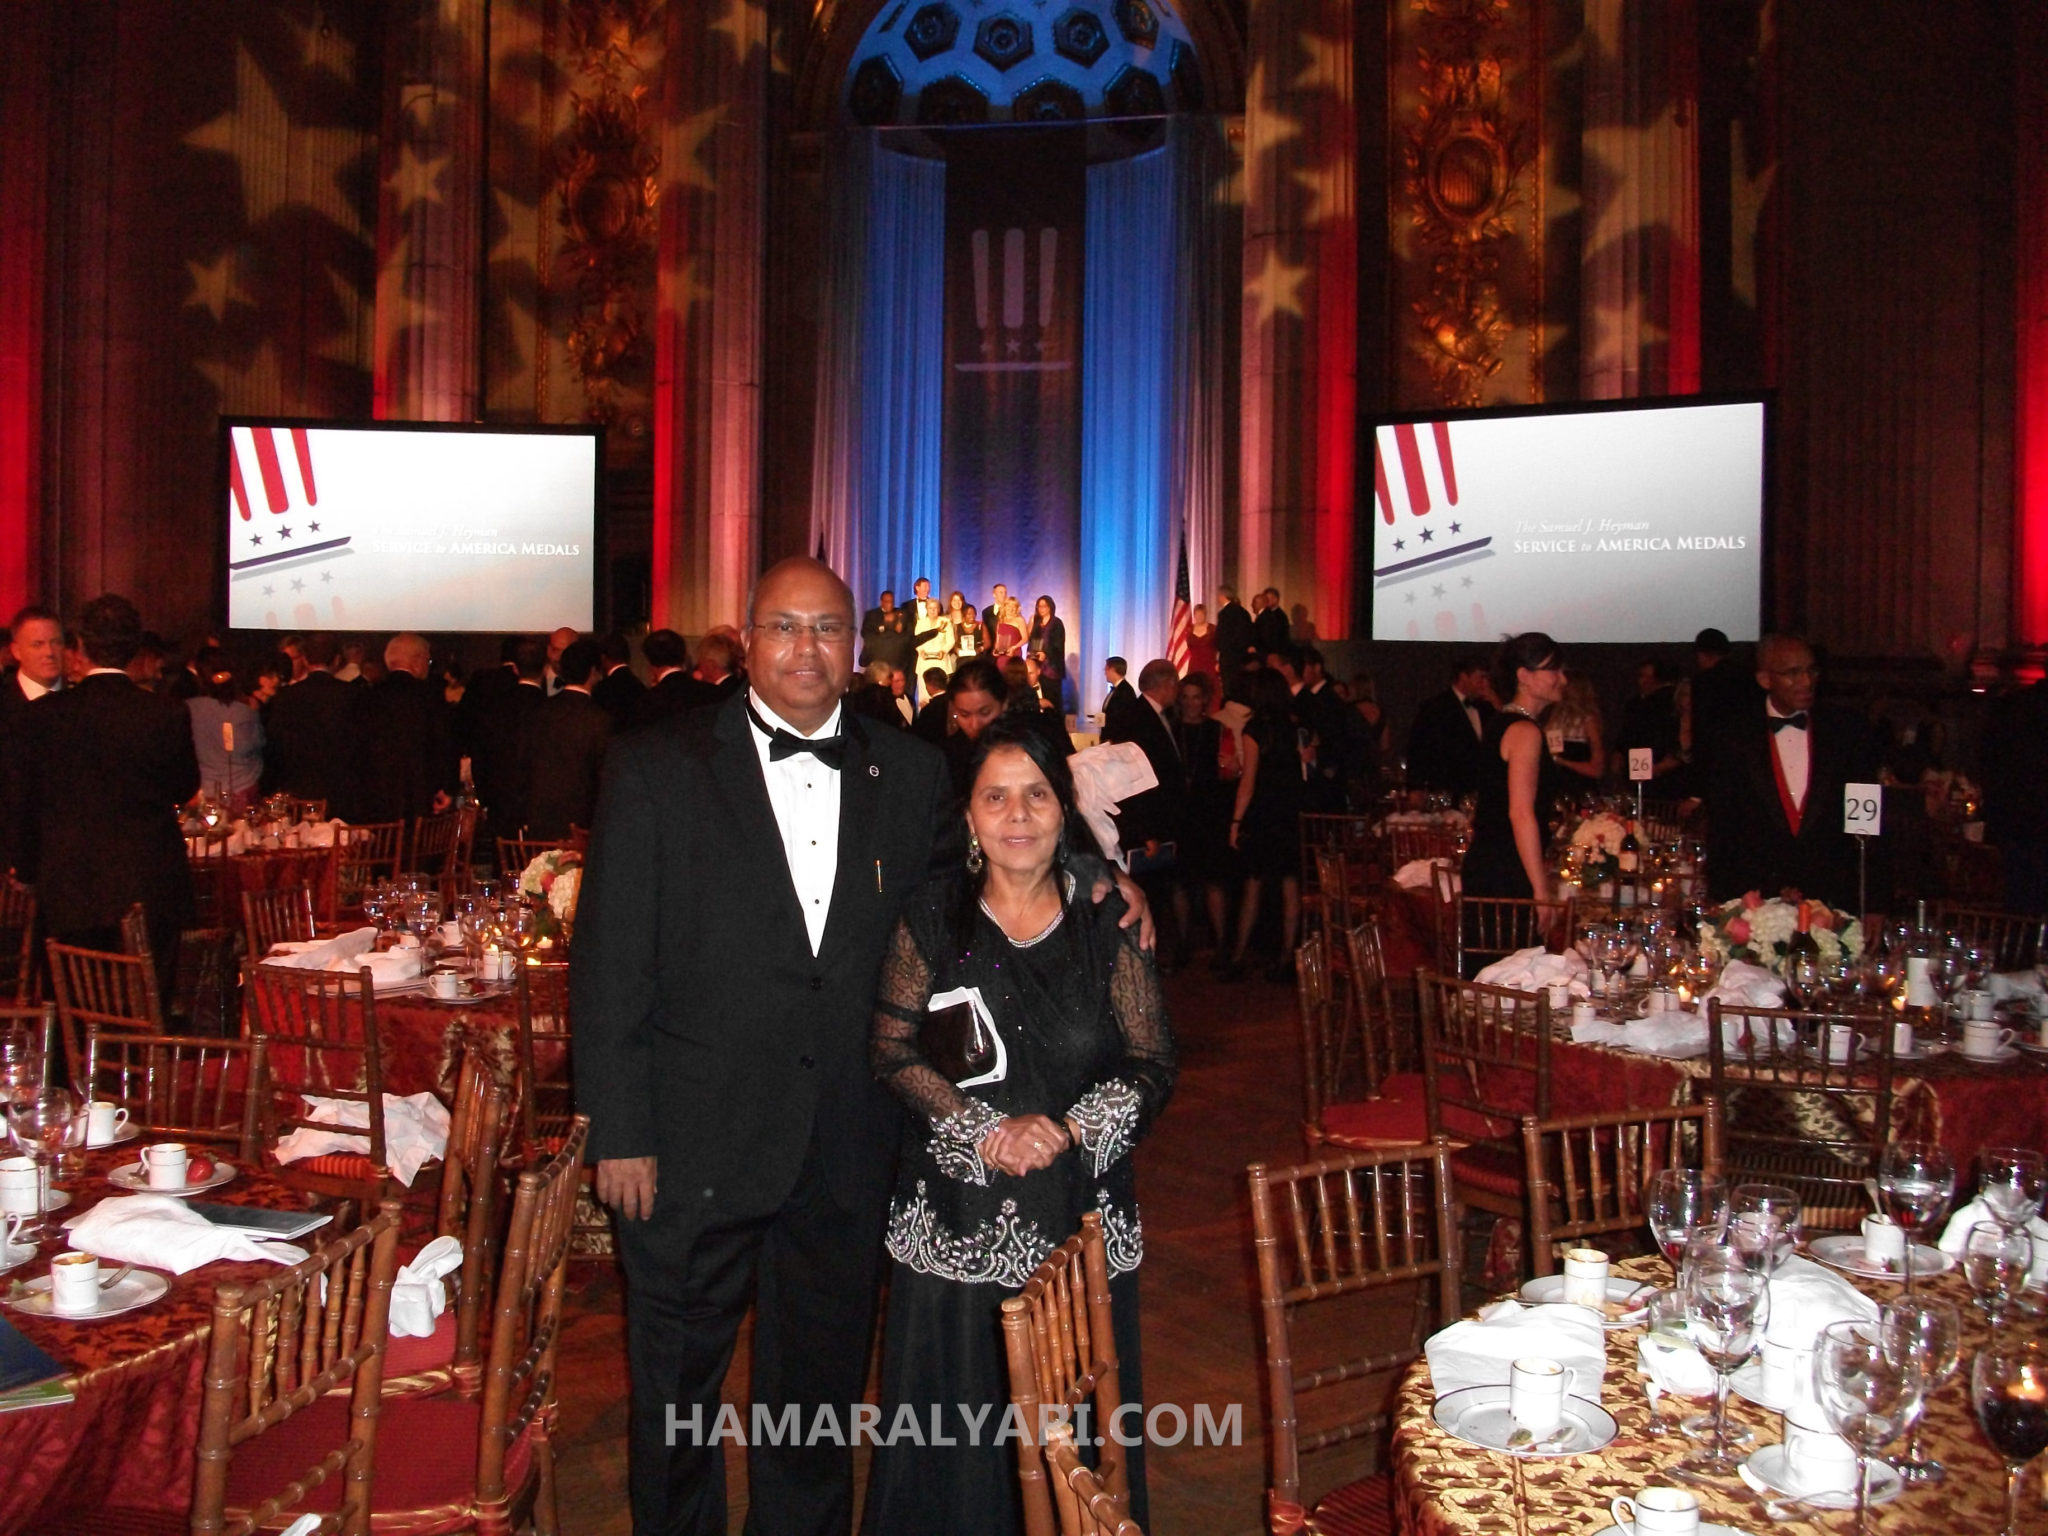 Dr. Ansari and wife at the Samuel J. Heyman Service to America Medals Award ceremony in Washington DC